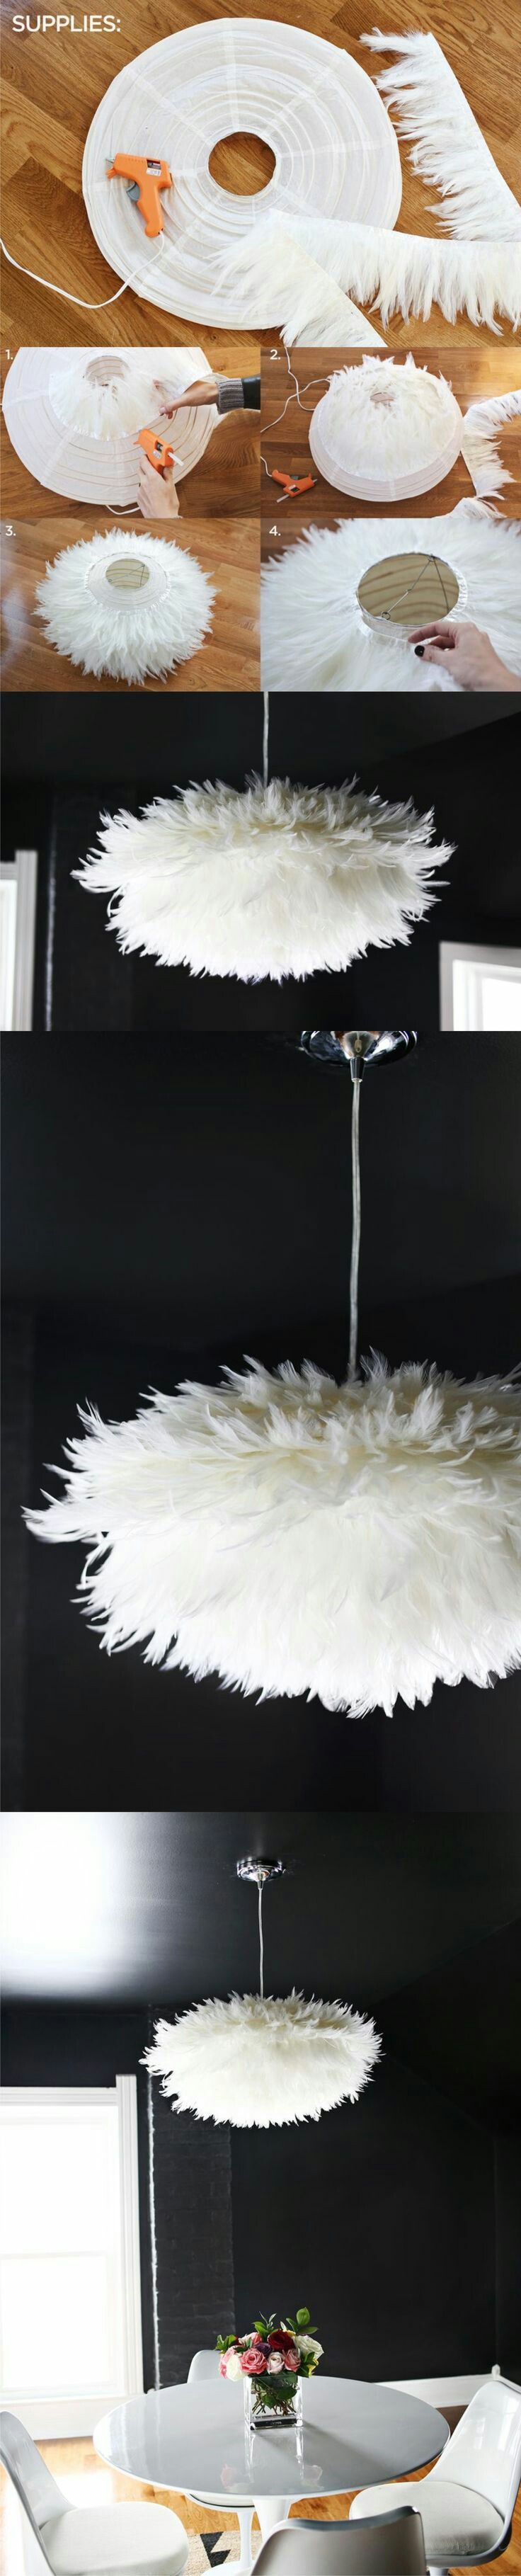 DIY Feather chandelier  #feather #feathercrafts #diy #diychandelier #diyroomdecor #homedecor